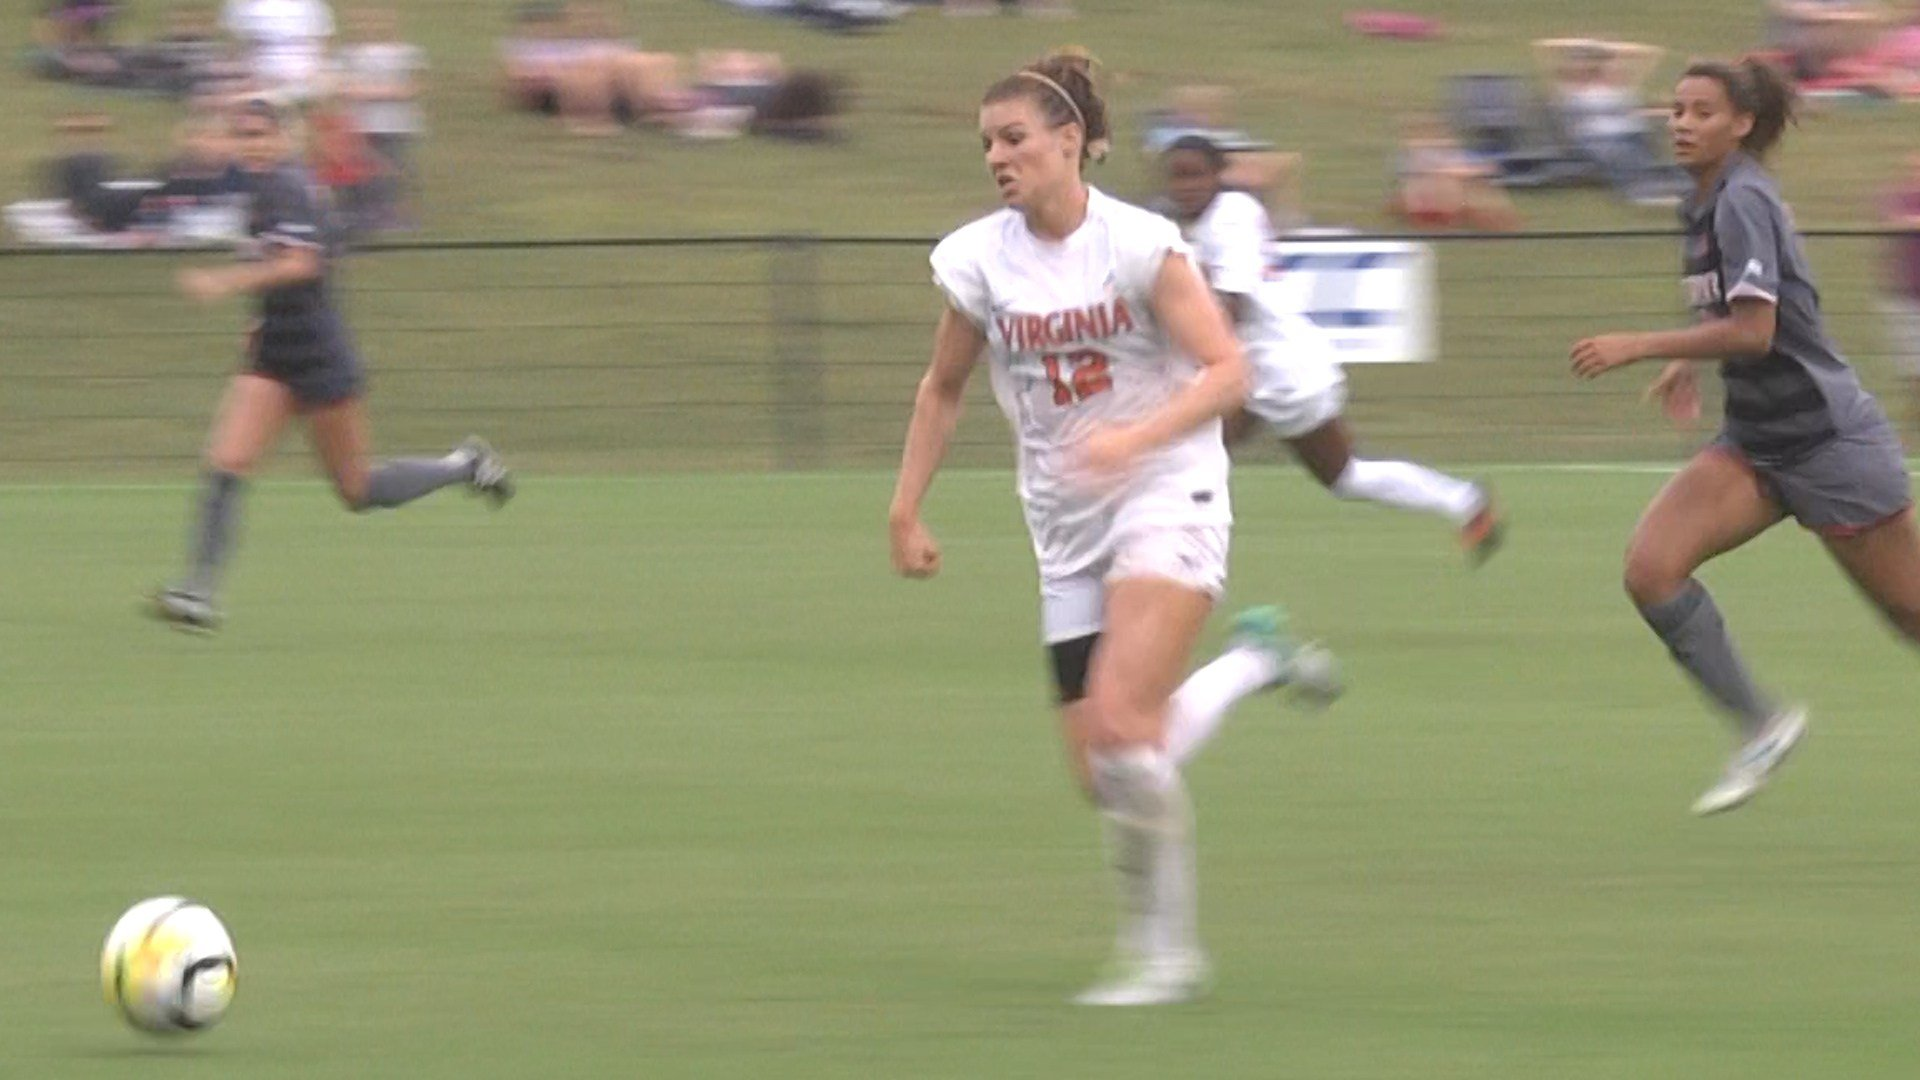 Veronica Latsko scored her fifth goal of the season in OT to give UVa 1-0 win over Louisville